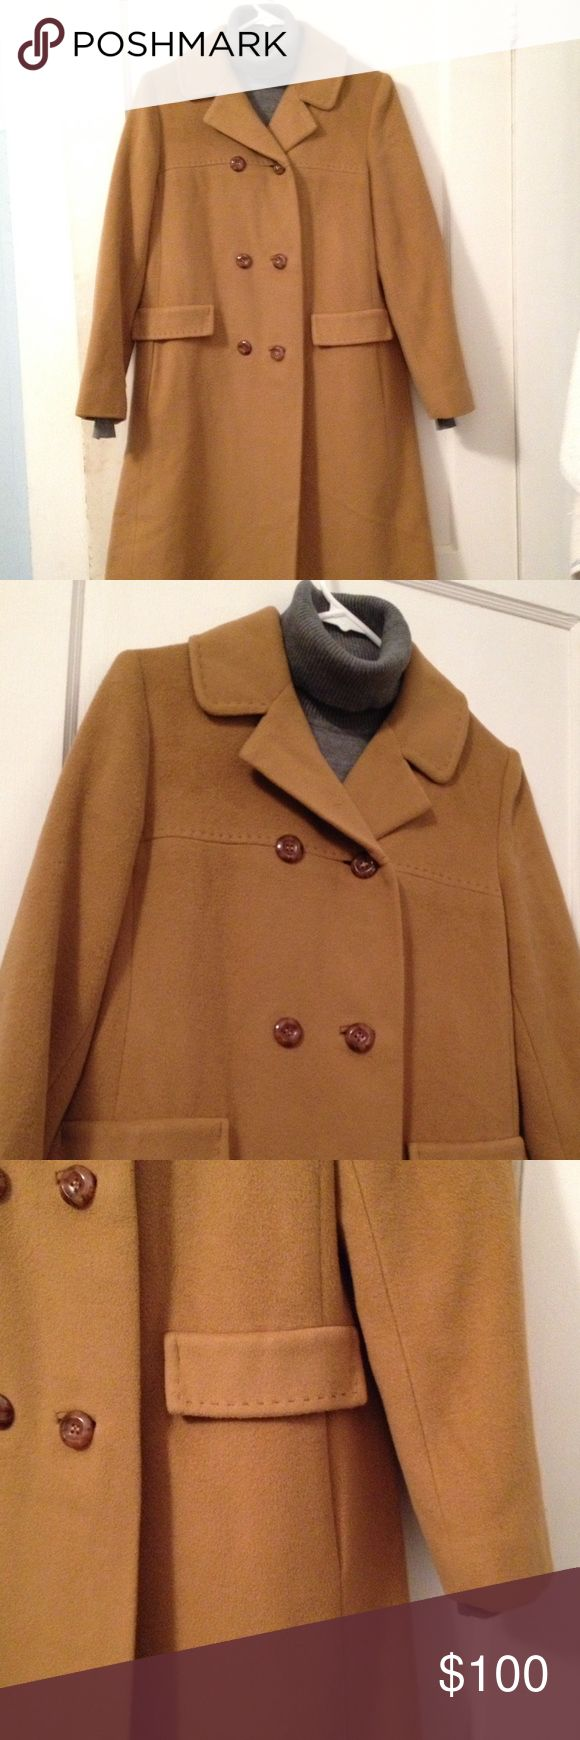 Burlington Cashmere Camel Colored Coat Vintage Burlington 100% cashmere camel colored coat. Coat comes about just below the knee. Two pockets in the front. Across the chest is measures roughly 19 inches. Length from top of the shoulder to the bottom is roughly 40 inches. Top stitching. (Grey turtle neck not included) Price is Firm!!! Burlington Jackets & Coats